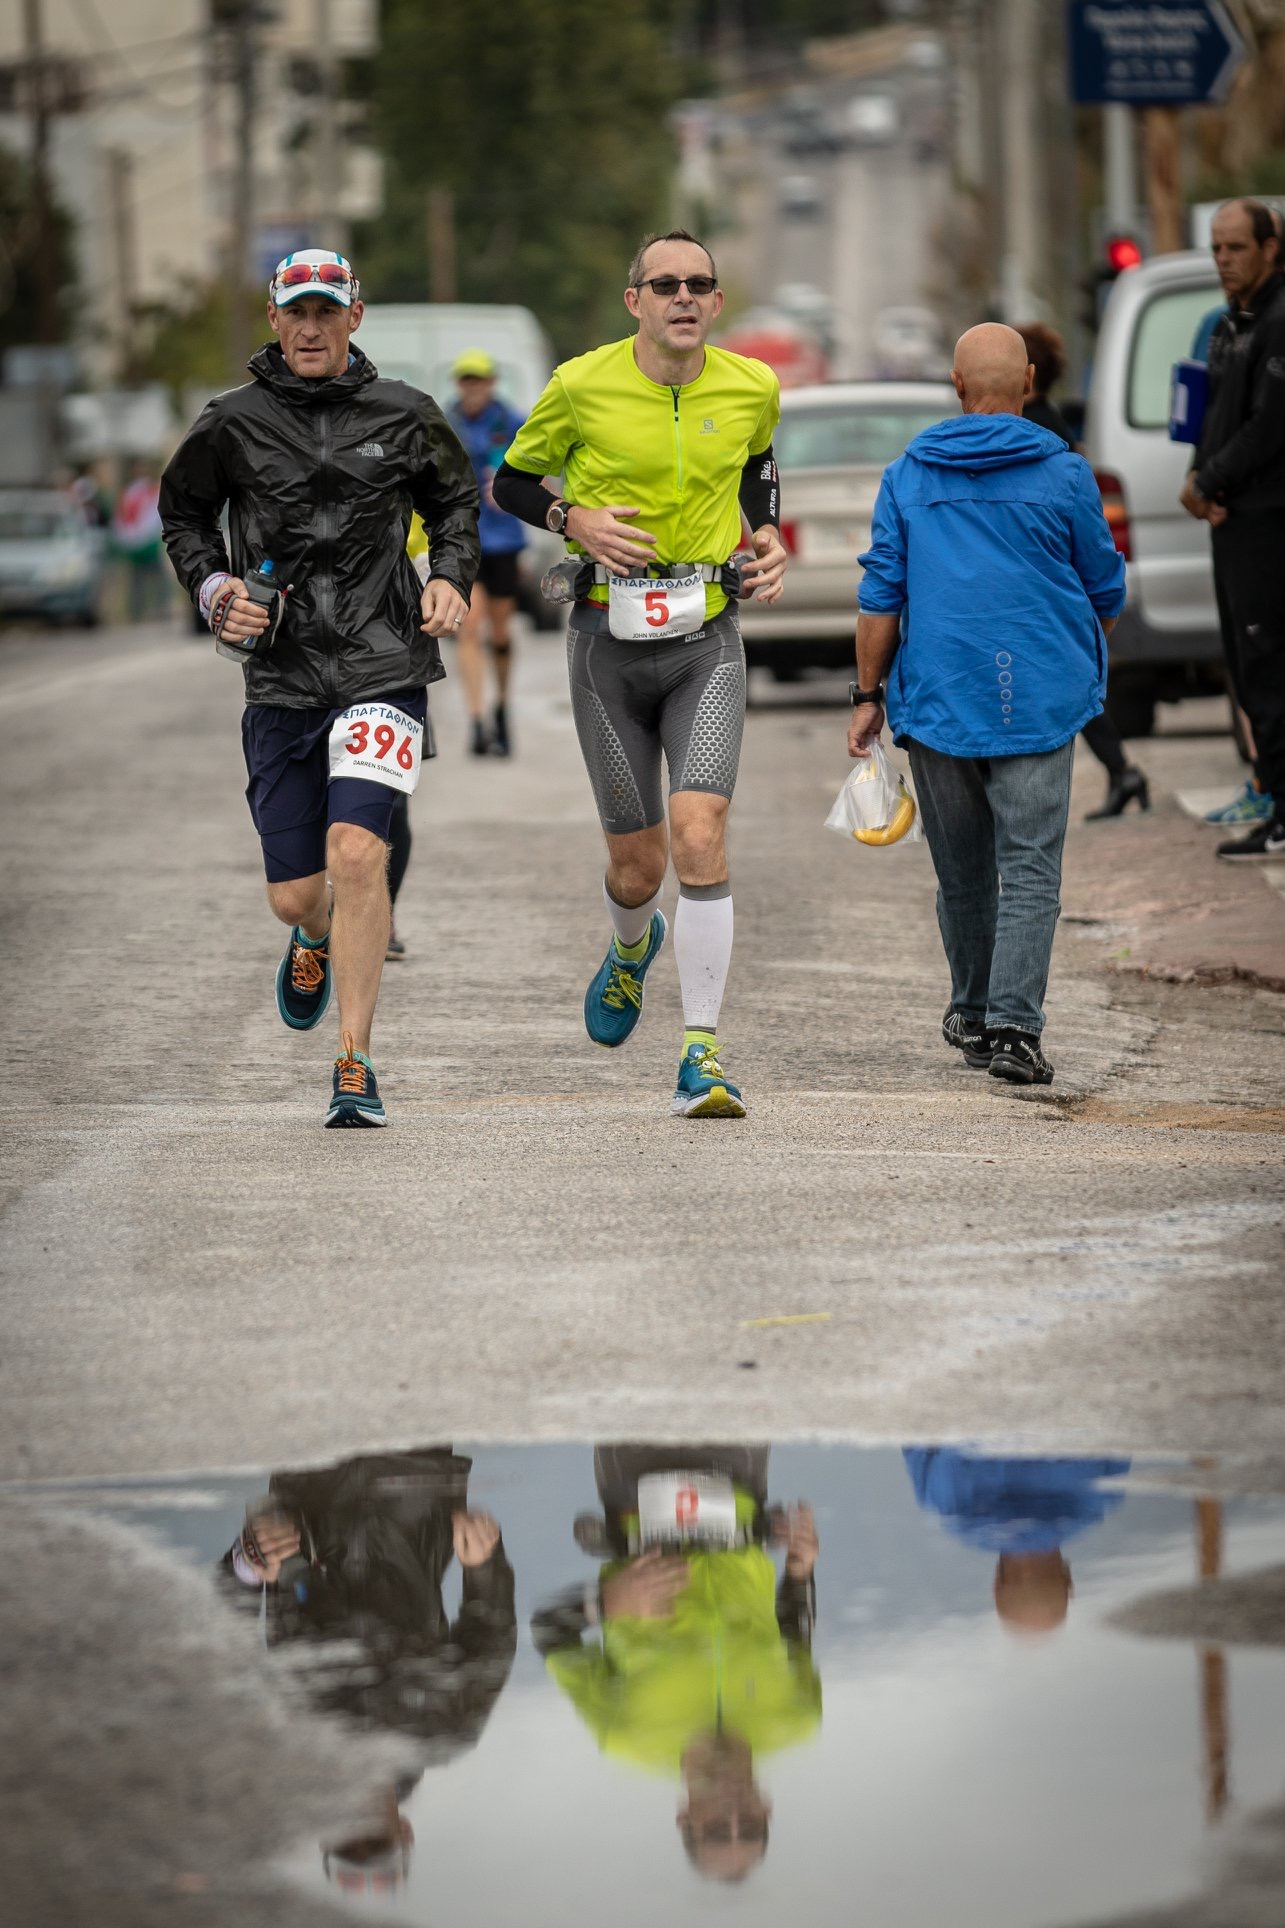 Approaching Megara with JV. I figure he's alright running through that puddle!  Photo Credit - Chris Mills